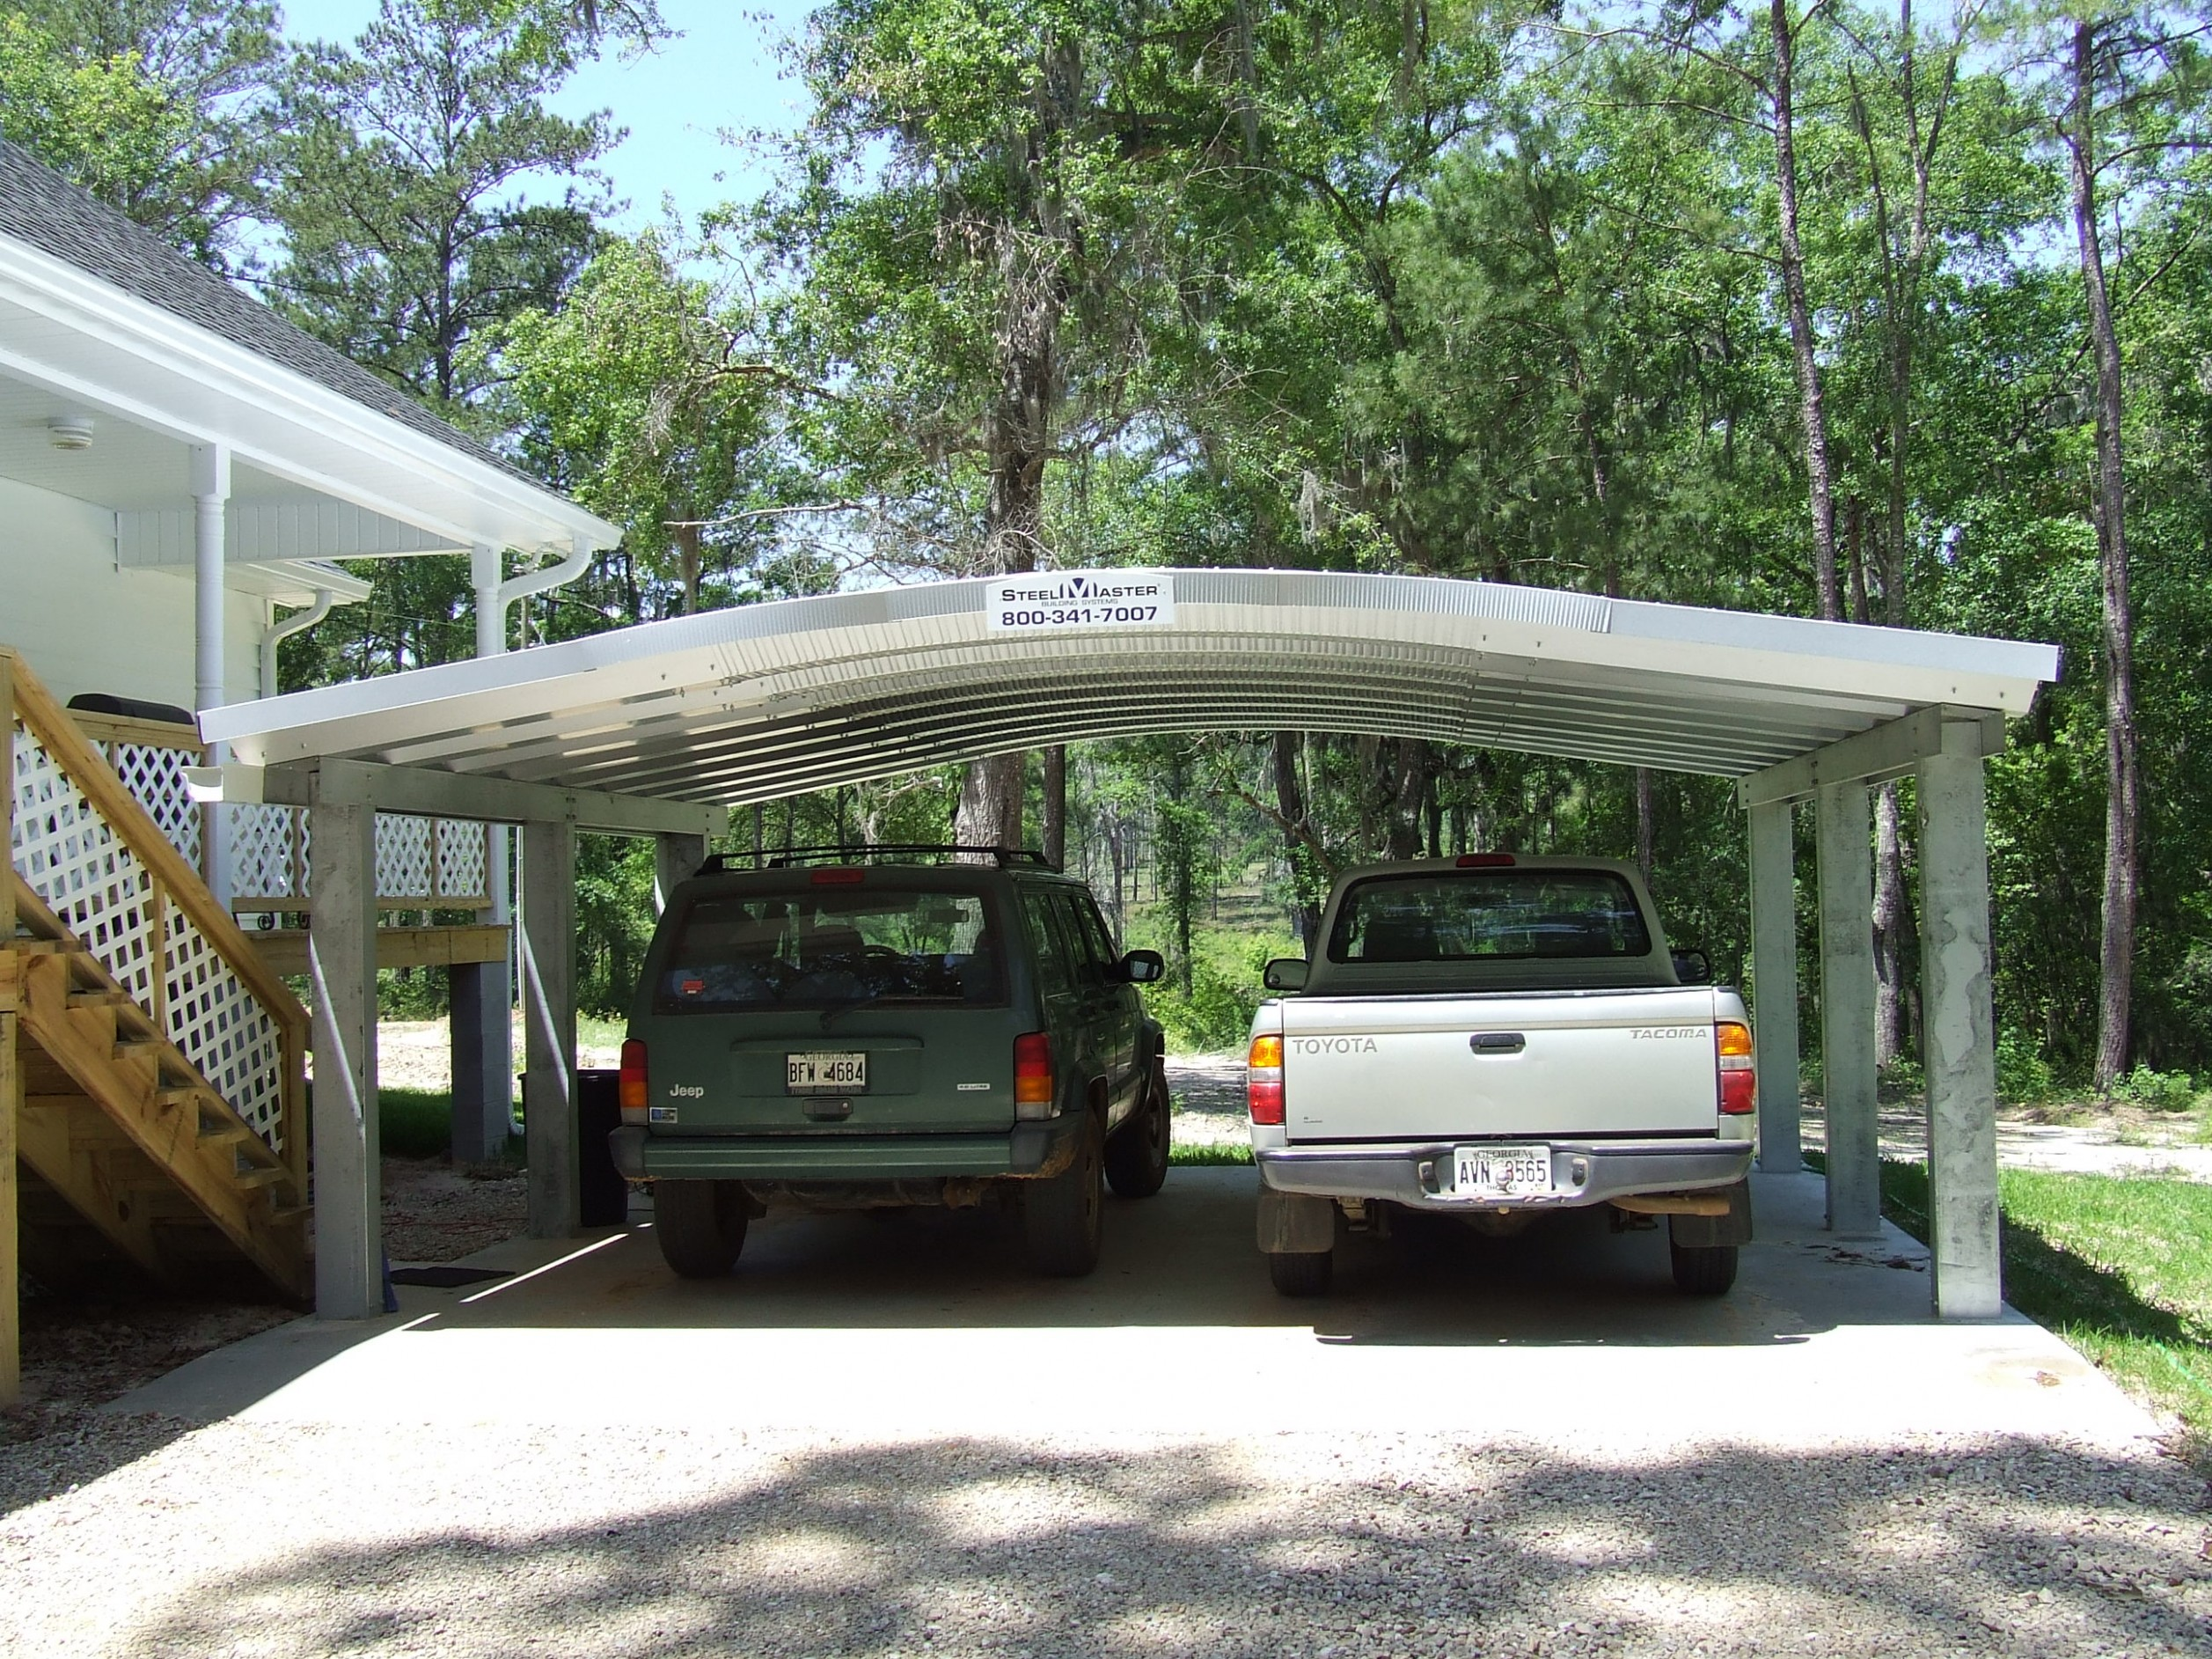 1517750473-best-solutions-of-carports-single-slope-carport-plans-aluminum-single-carport-kit.jpg